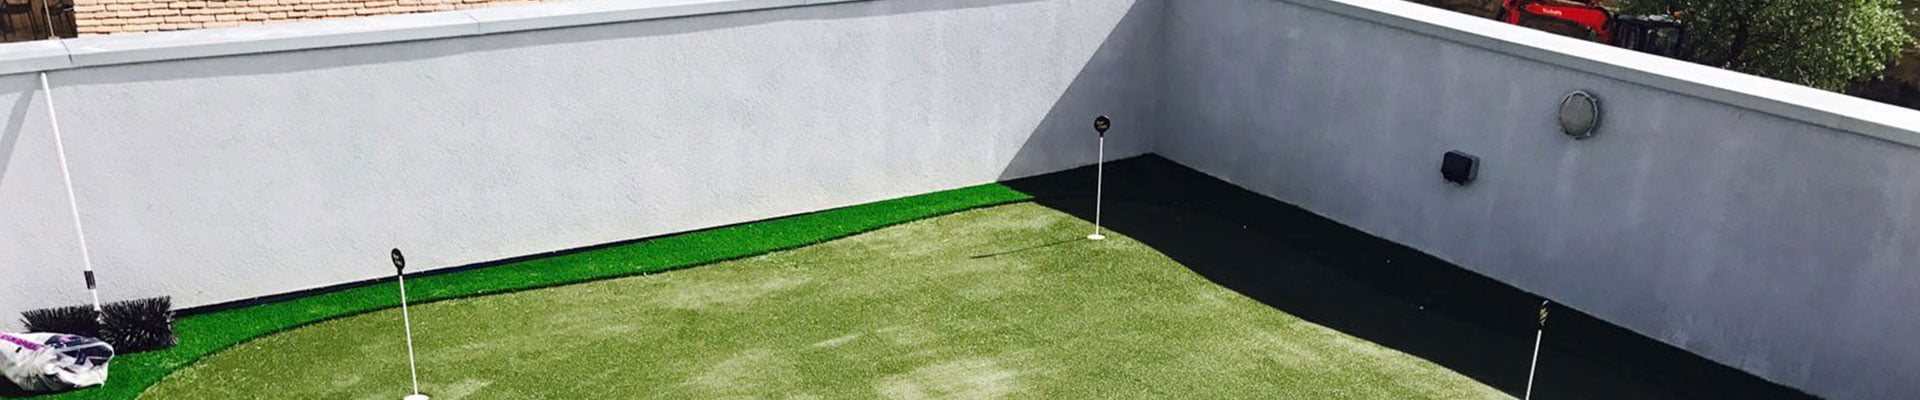 We can assist with a range of products to provide you with a professional putting green area, or a beautiful lawn to catch sunshine in a secluded space.